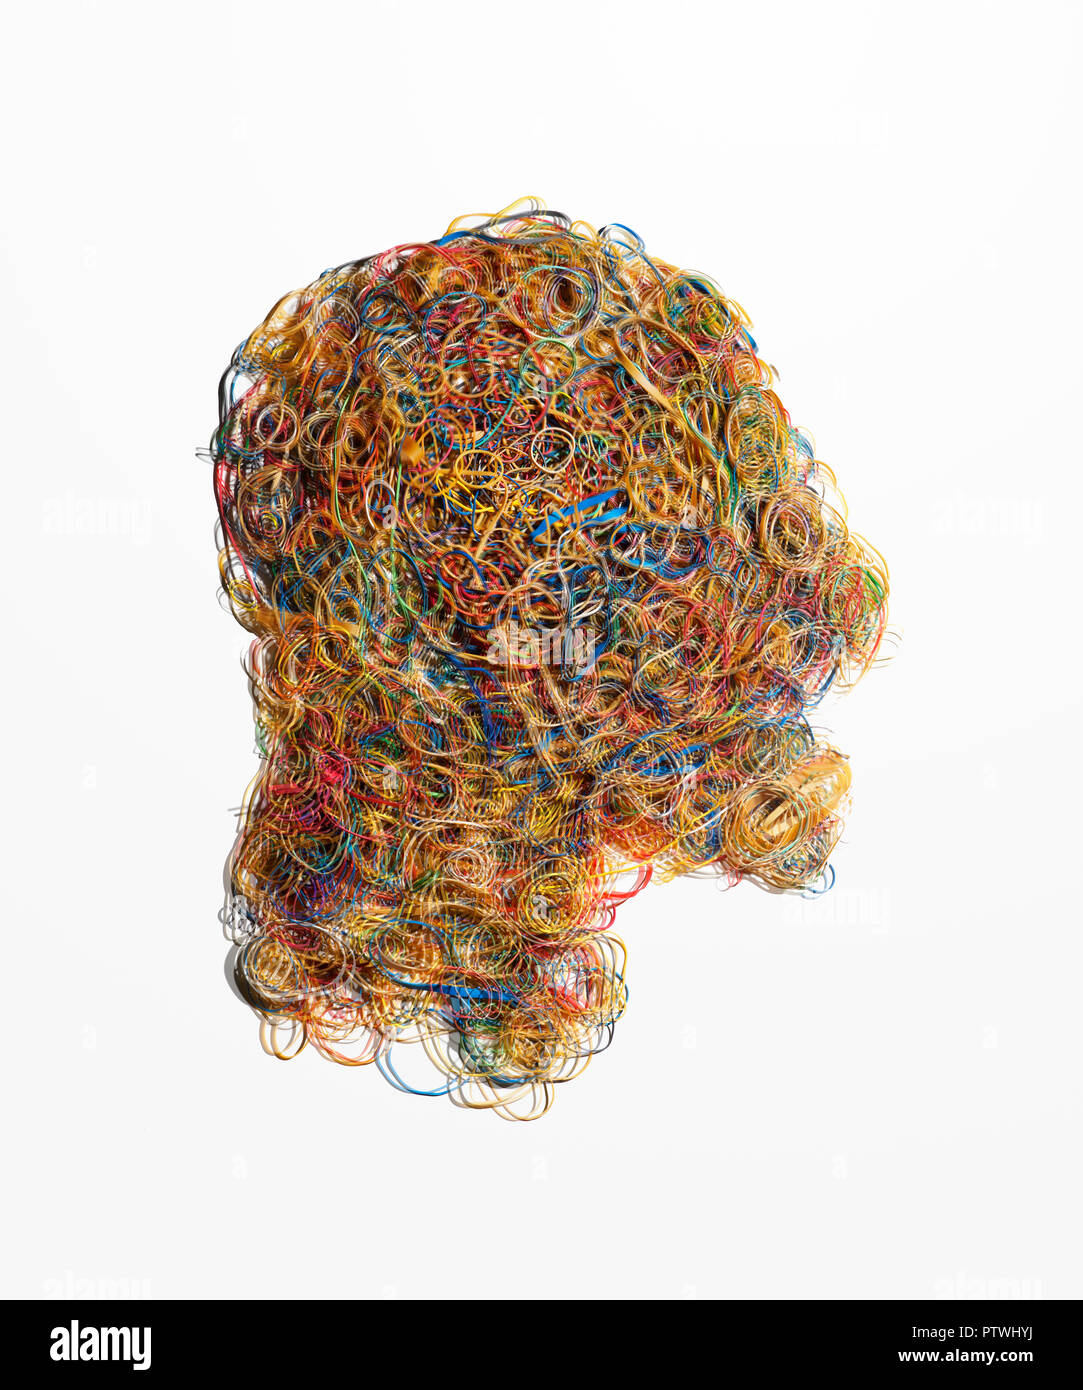 Shape of human head made from elastic rubber bands - Stock Image